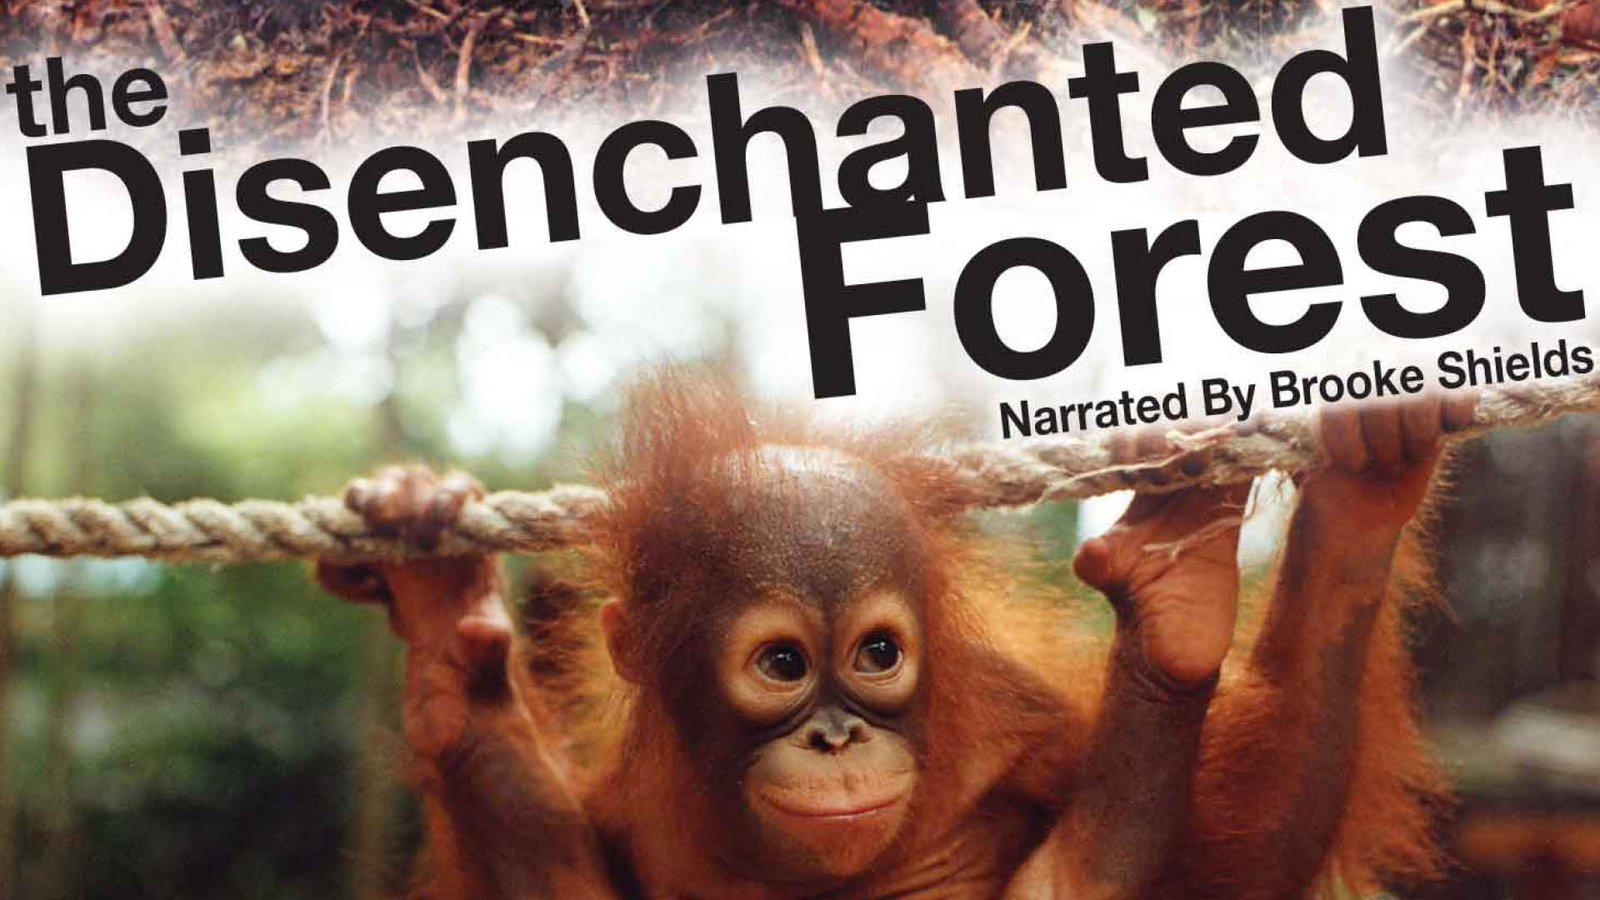 Disenchanted Forest - Great Apes in Asia